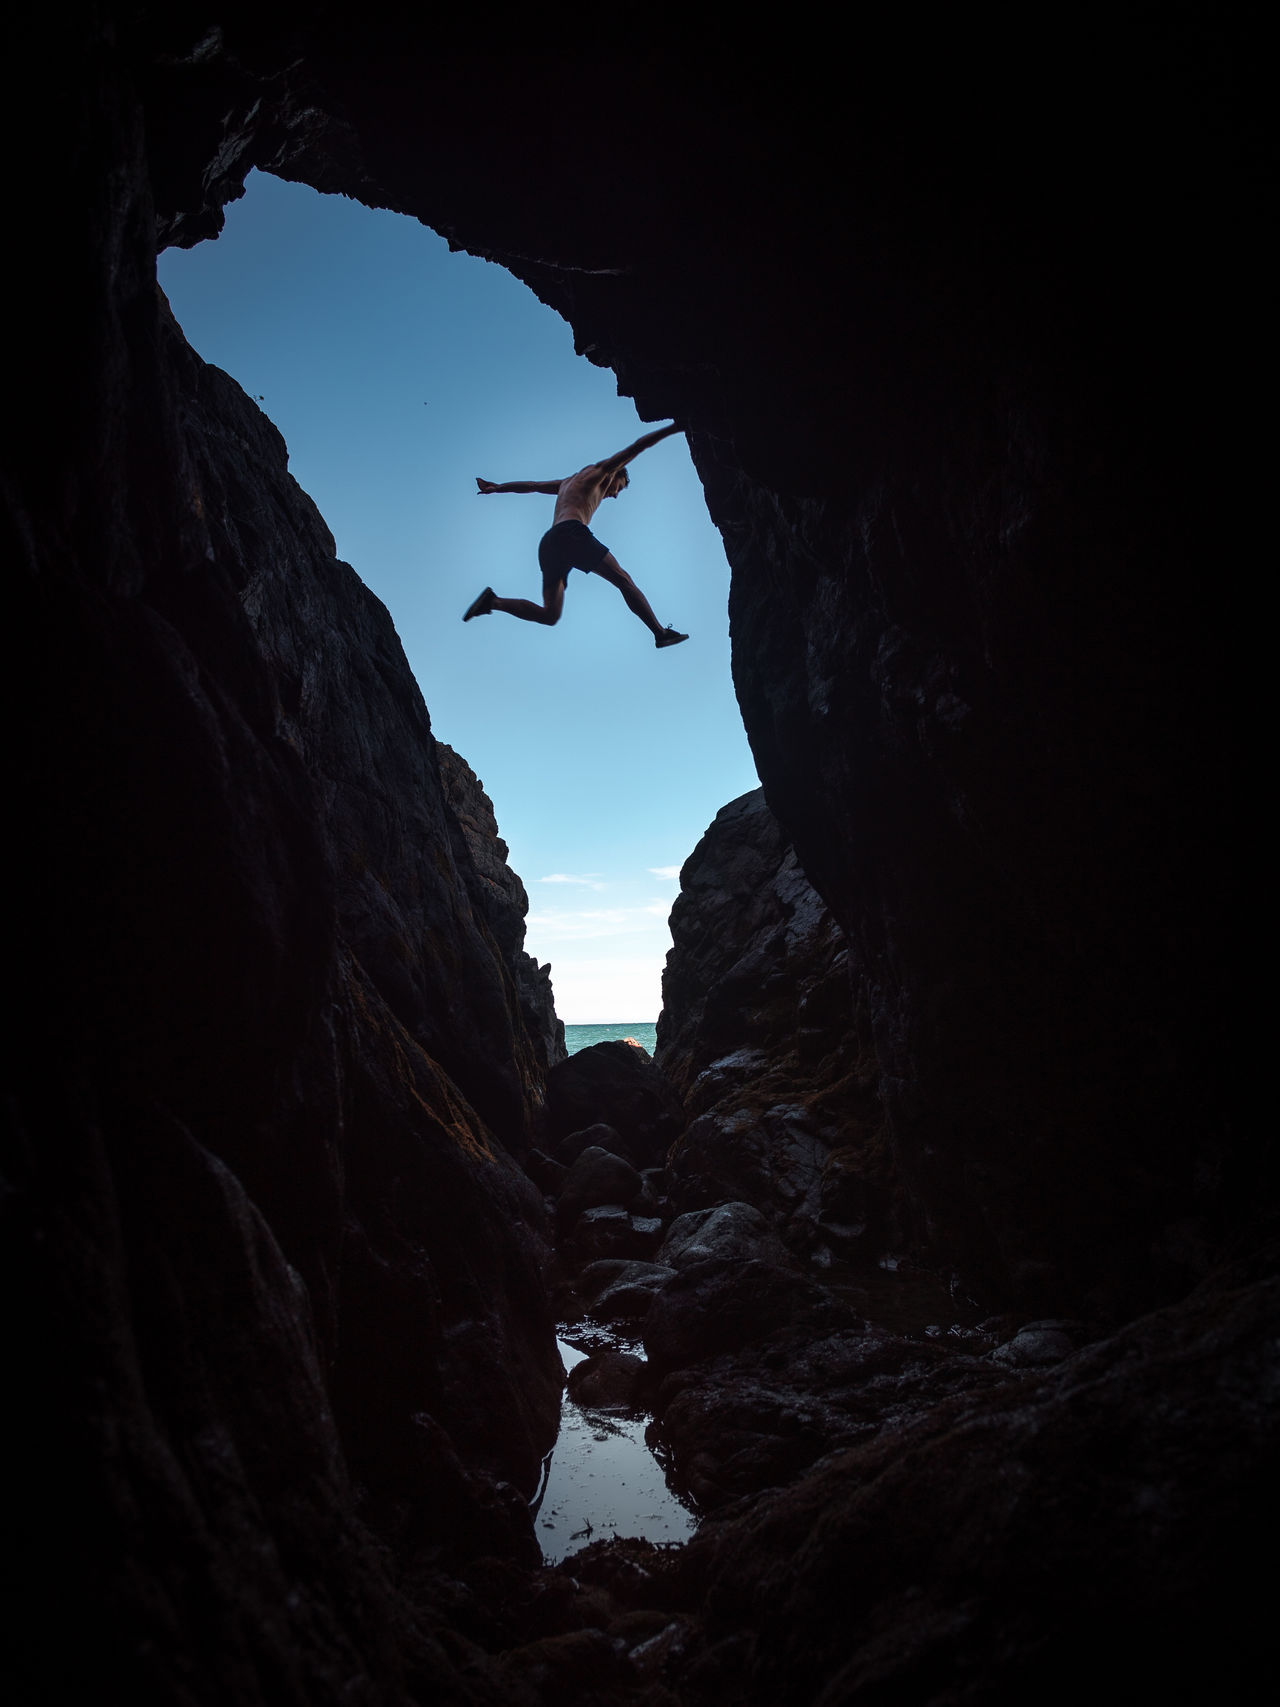 Low angle view of man jumping over rock formation against sky